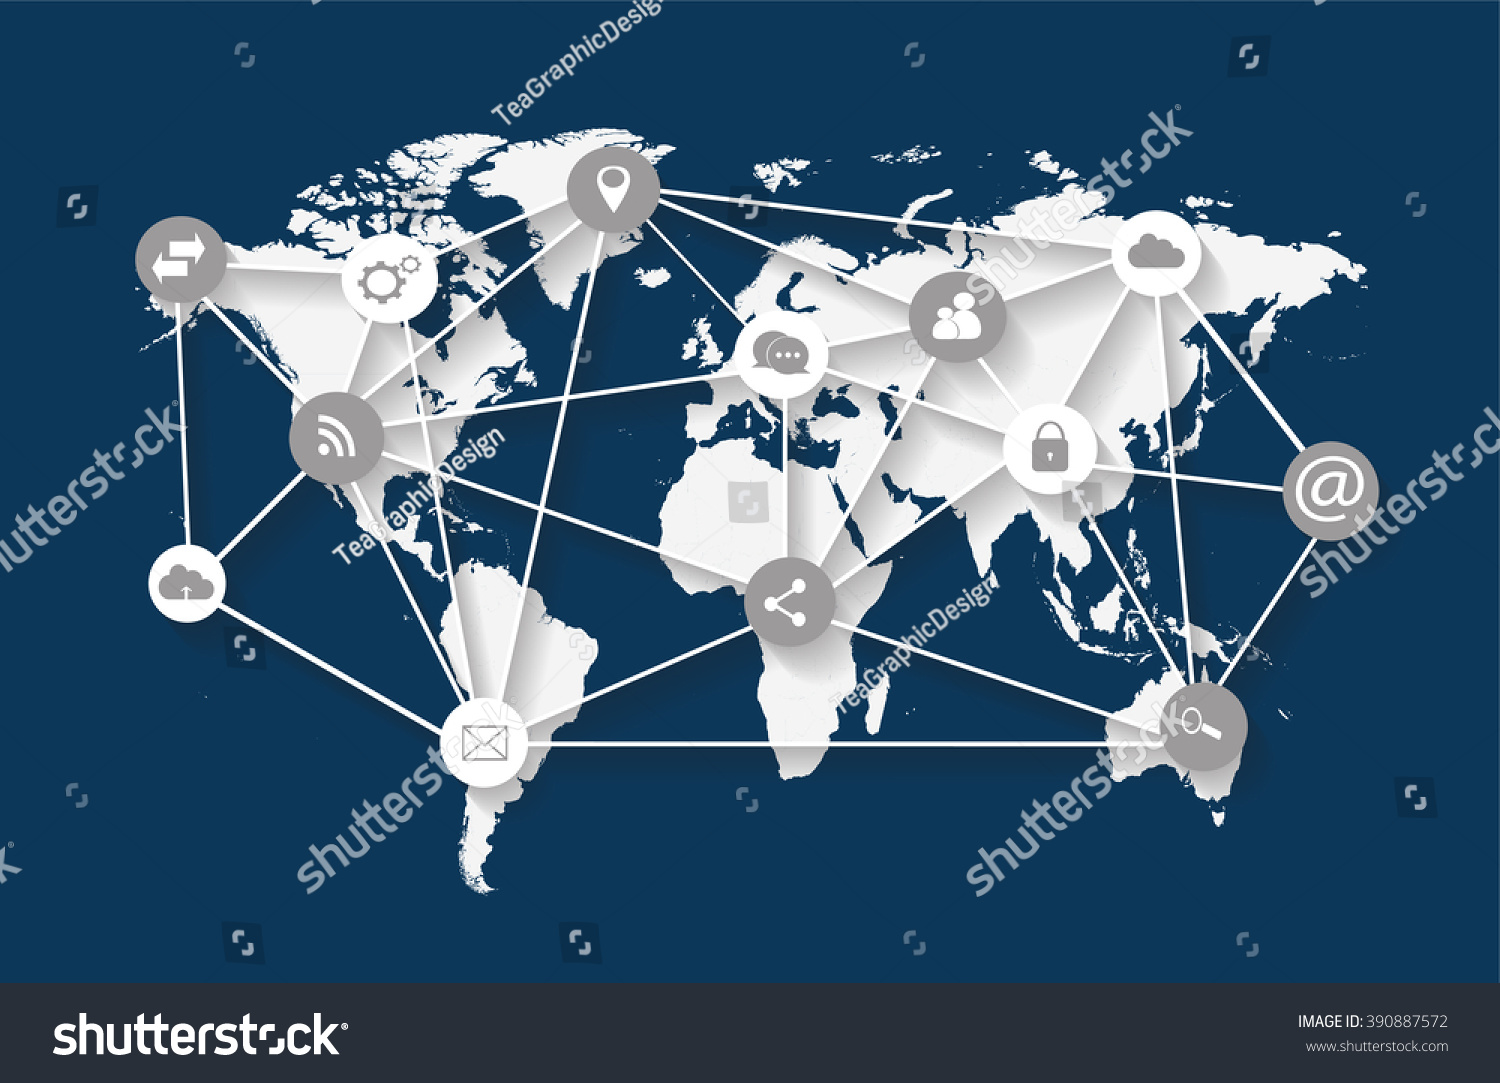 World map vector flat white infographics stock vector 390887572 world map vector flat white infographics with social media icons gumiabroncs Choice Image